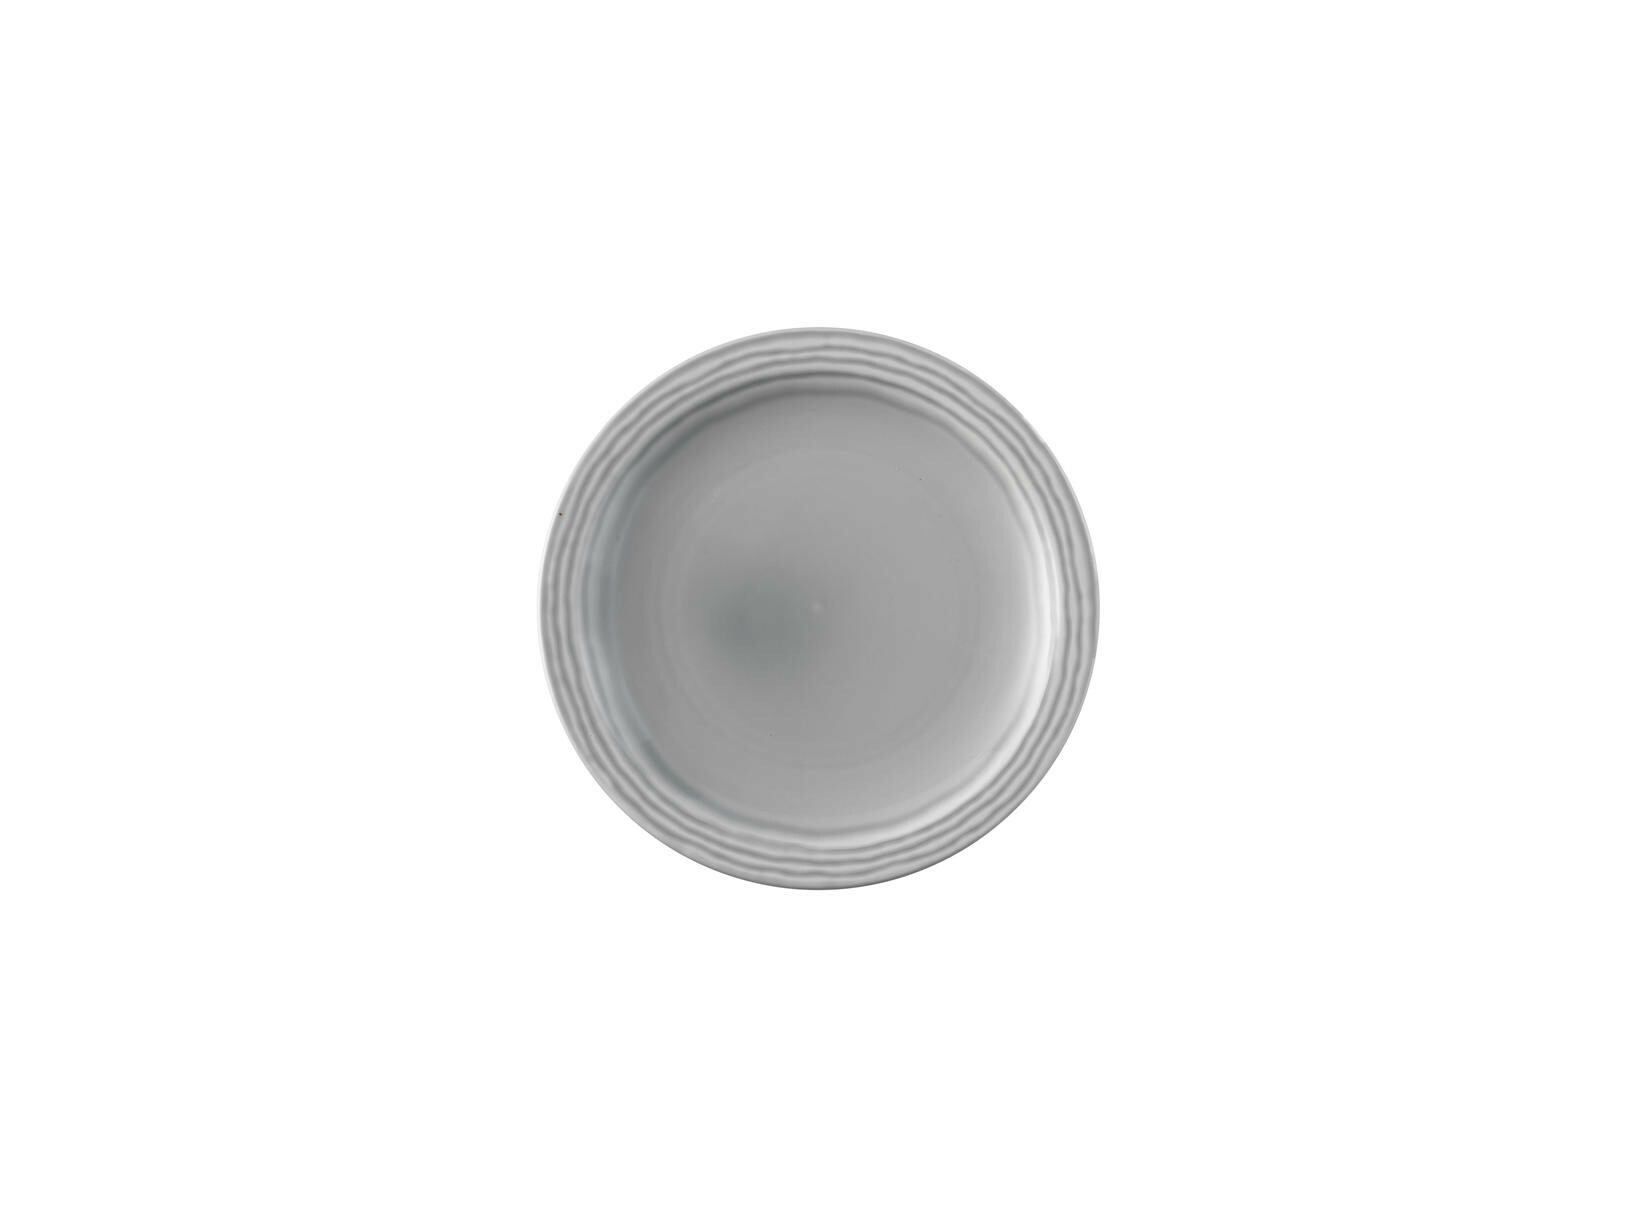 Dudson Harvest Norse Grey bord smalle rand 20,3 cm